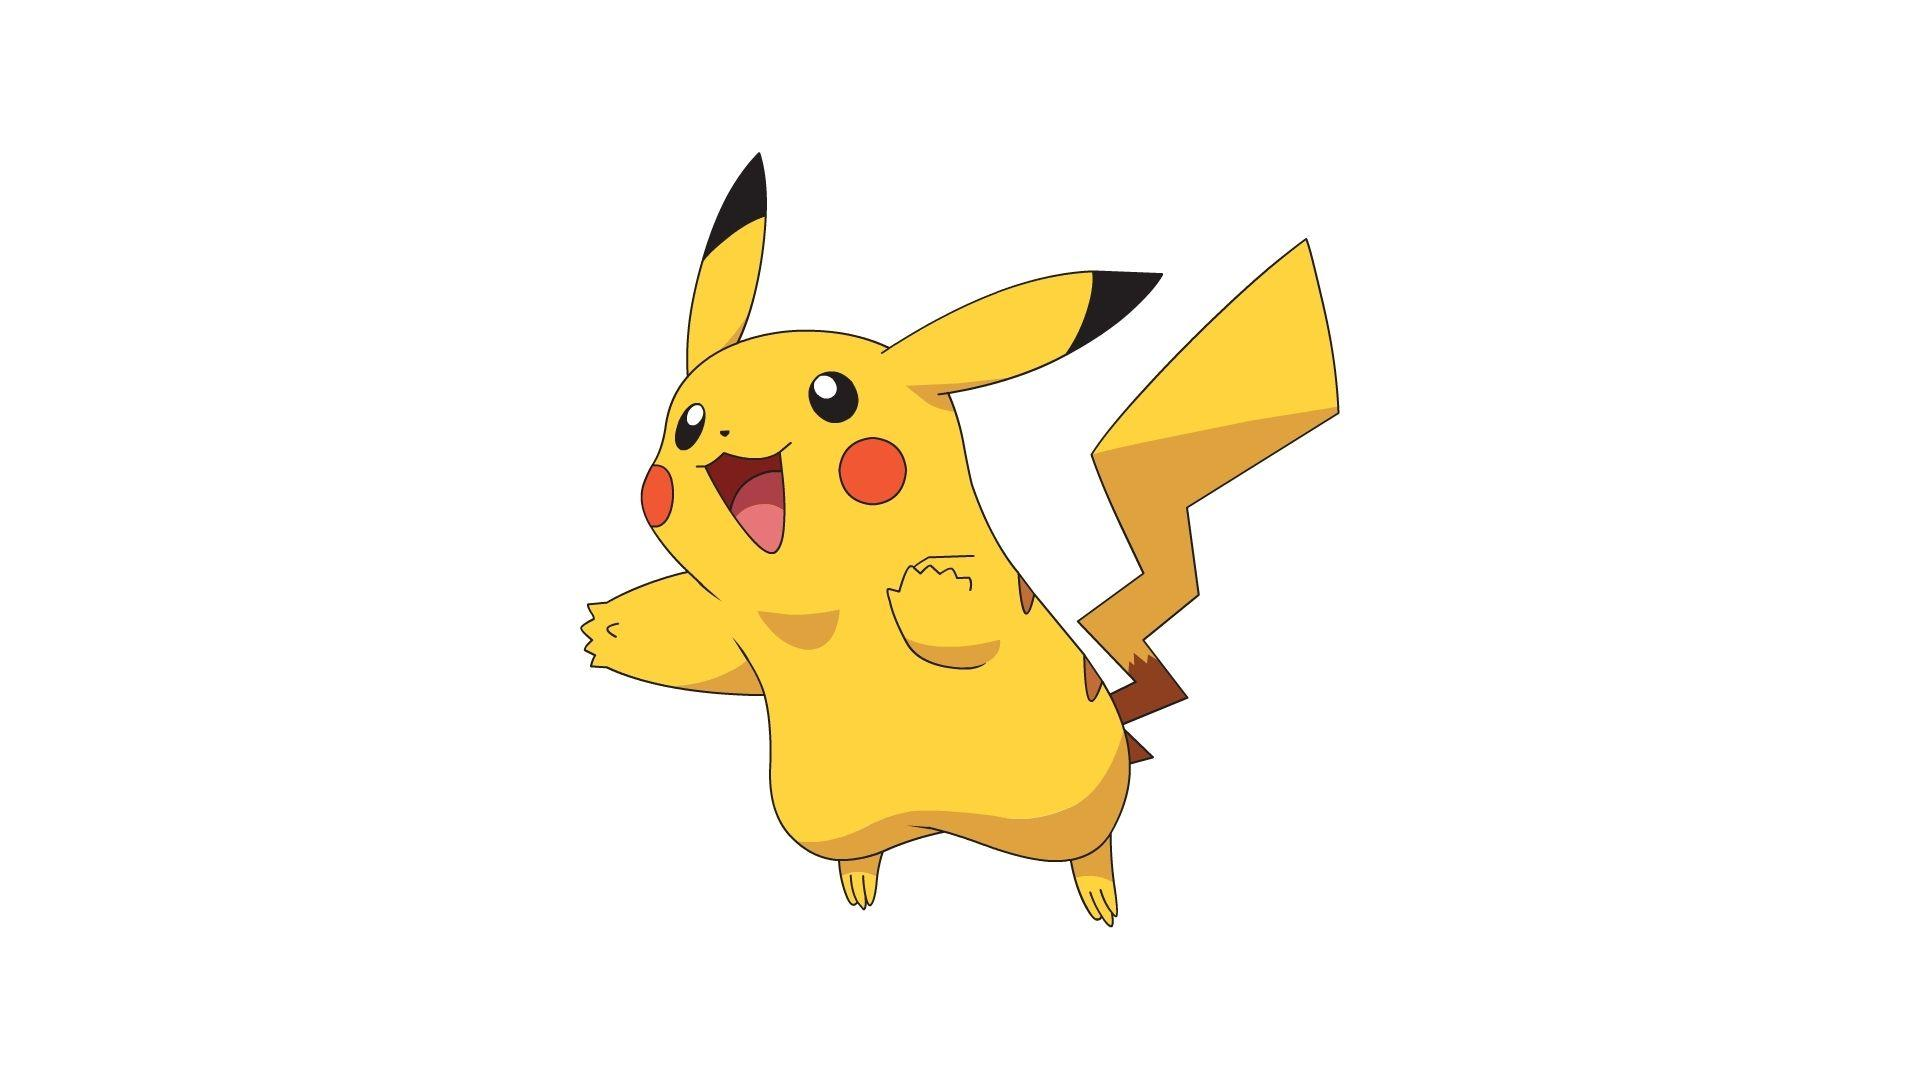 Download And Pokemon Pikachu Resolution Wallpaper 1920x1080 | HD ...